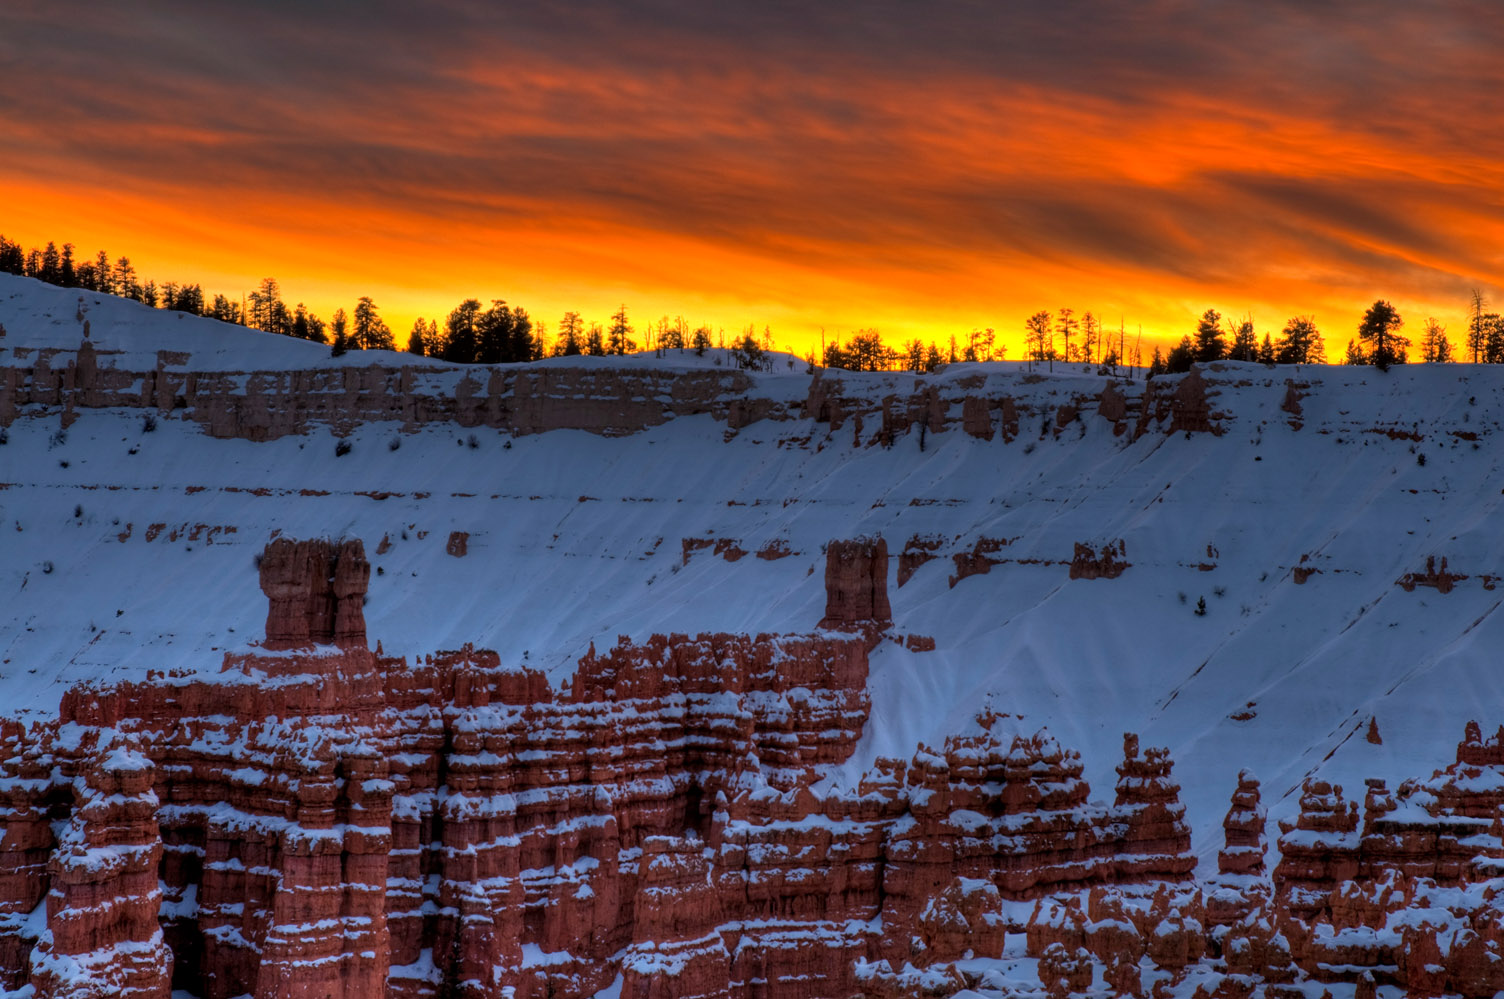 Bryce Canyon, Utah, at sunset